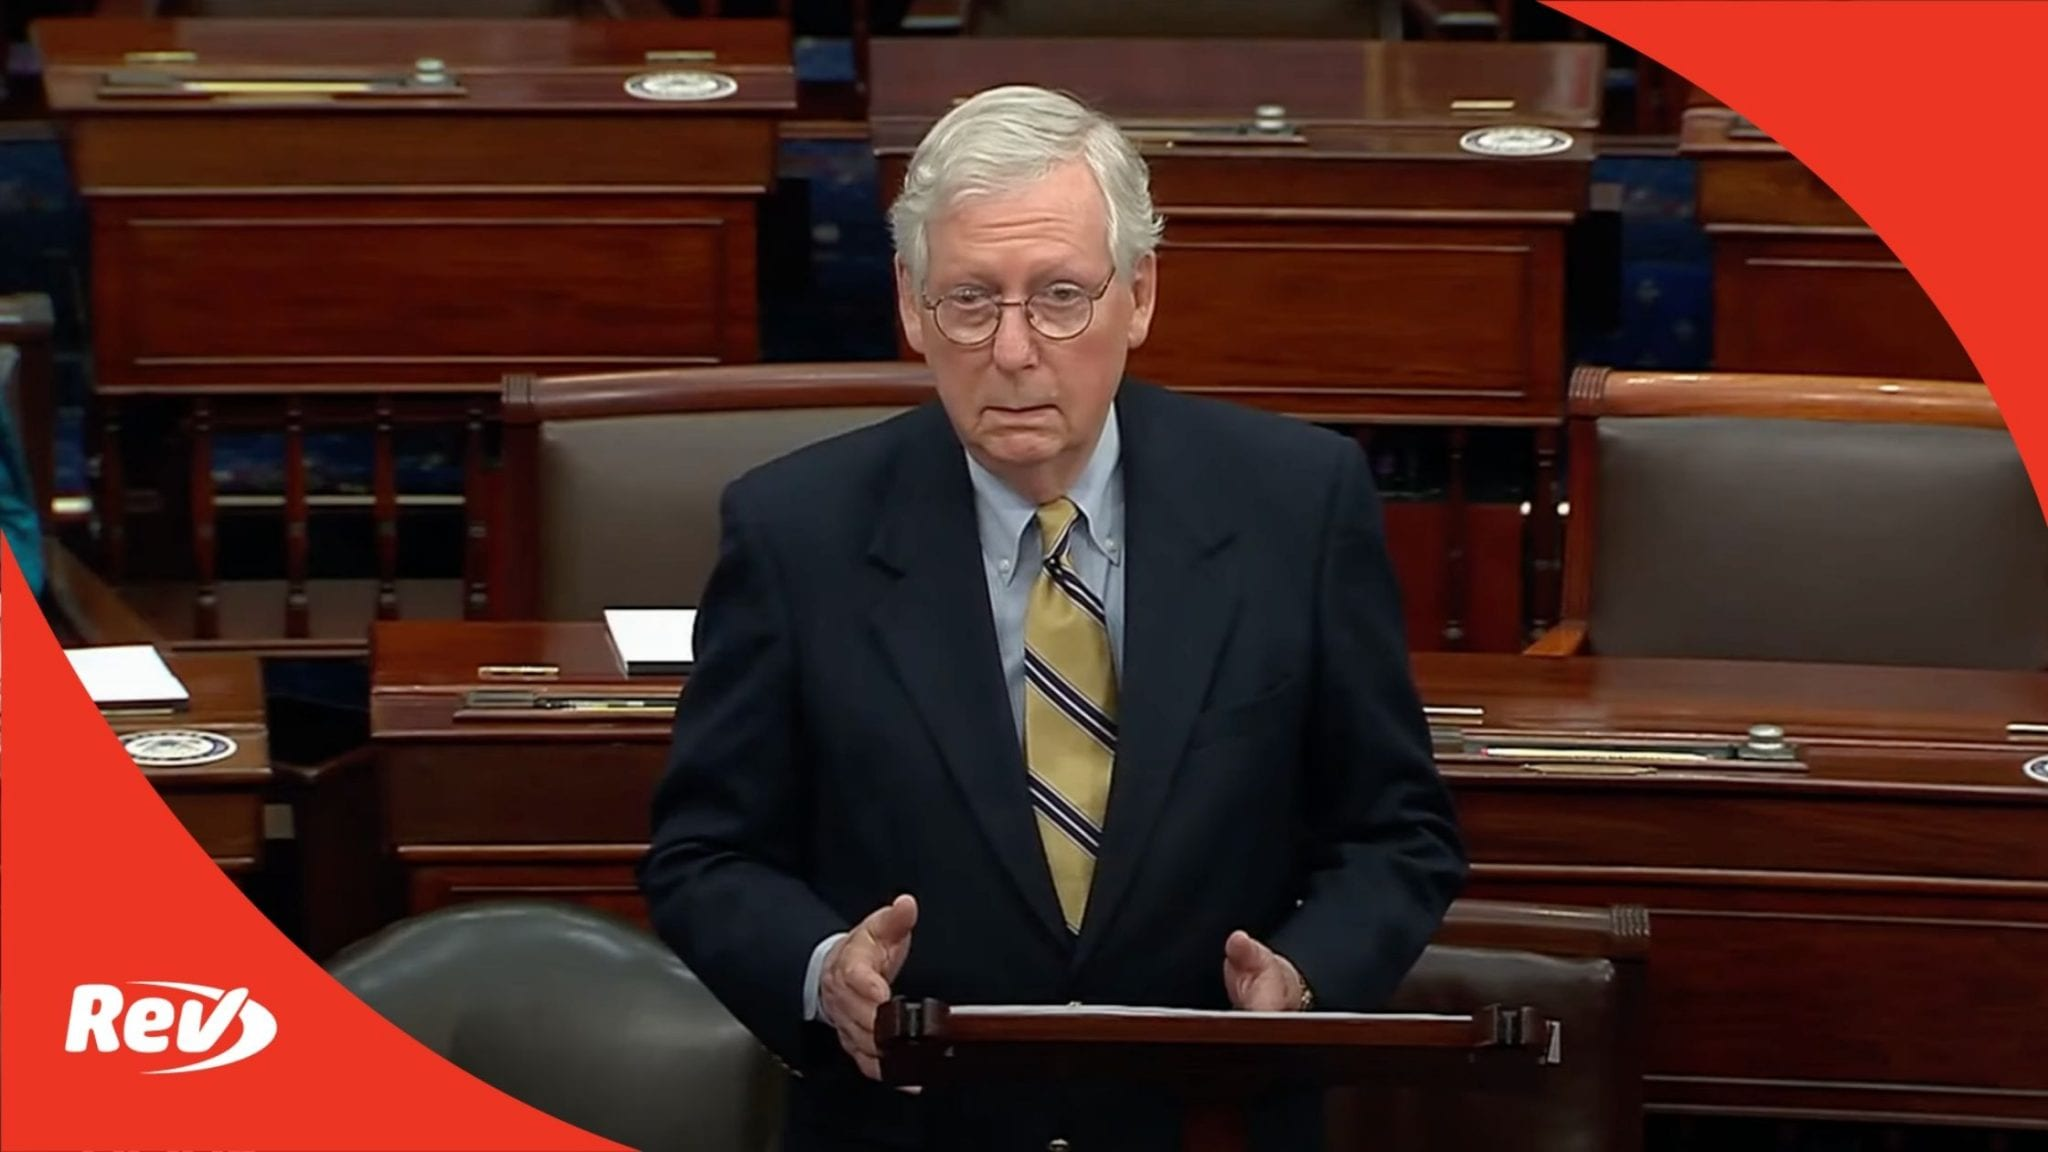 Mitch McConnell Speech After Vote to Acquit